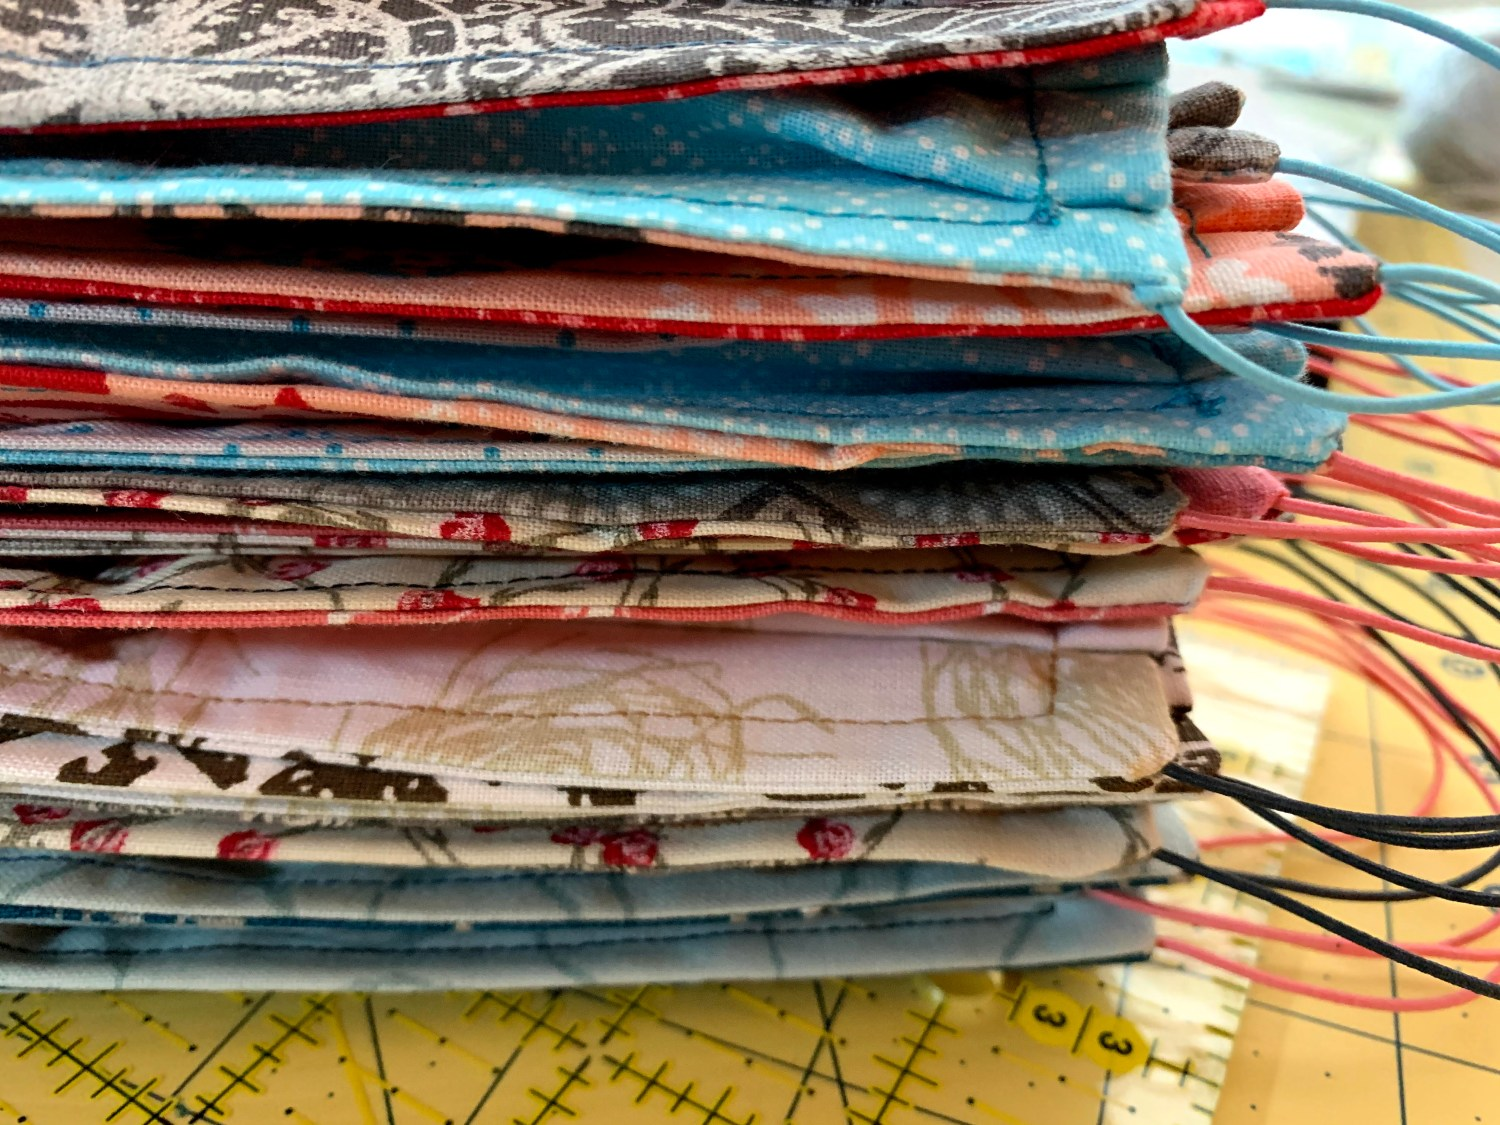 A stack of rectangular fabric masks that have color coordinated thin elastic ear loops. The masks are on top of a yellow cutting mat and a clear quilting ruler.